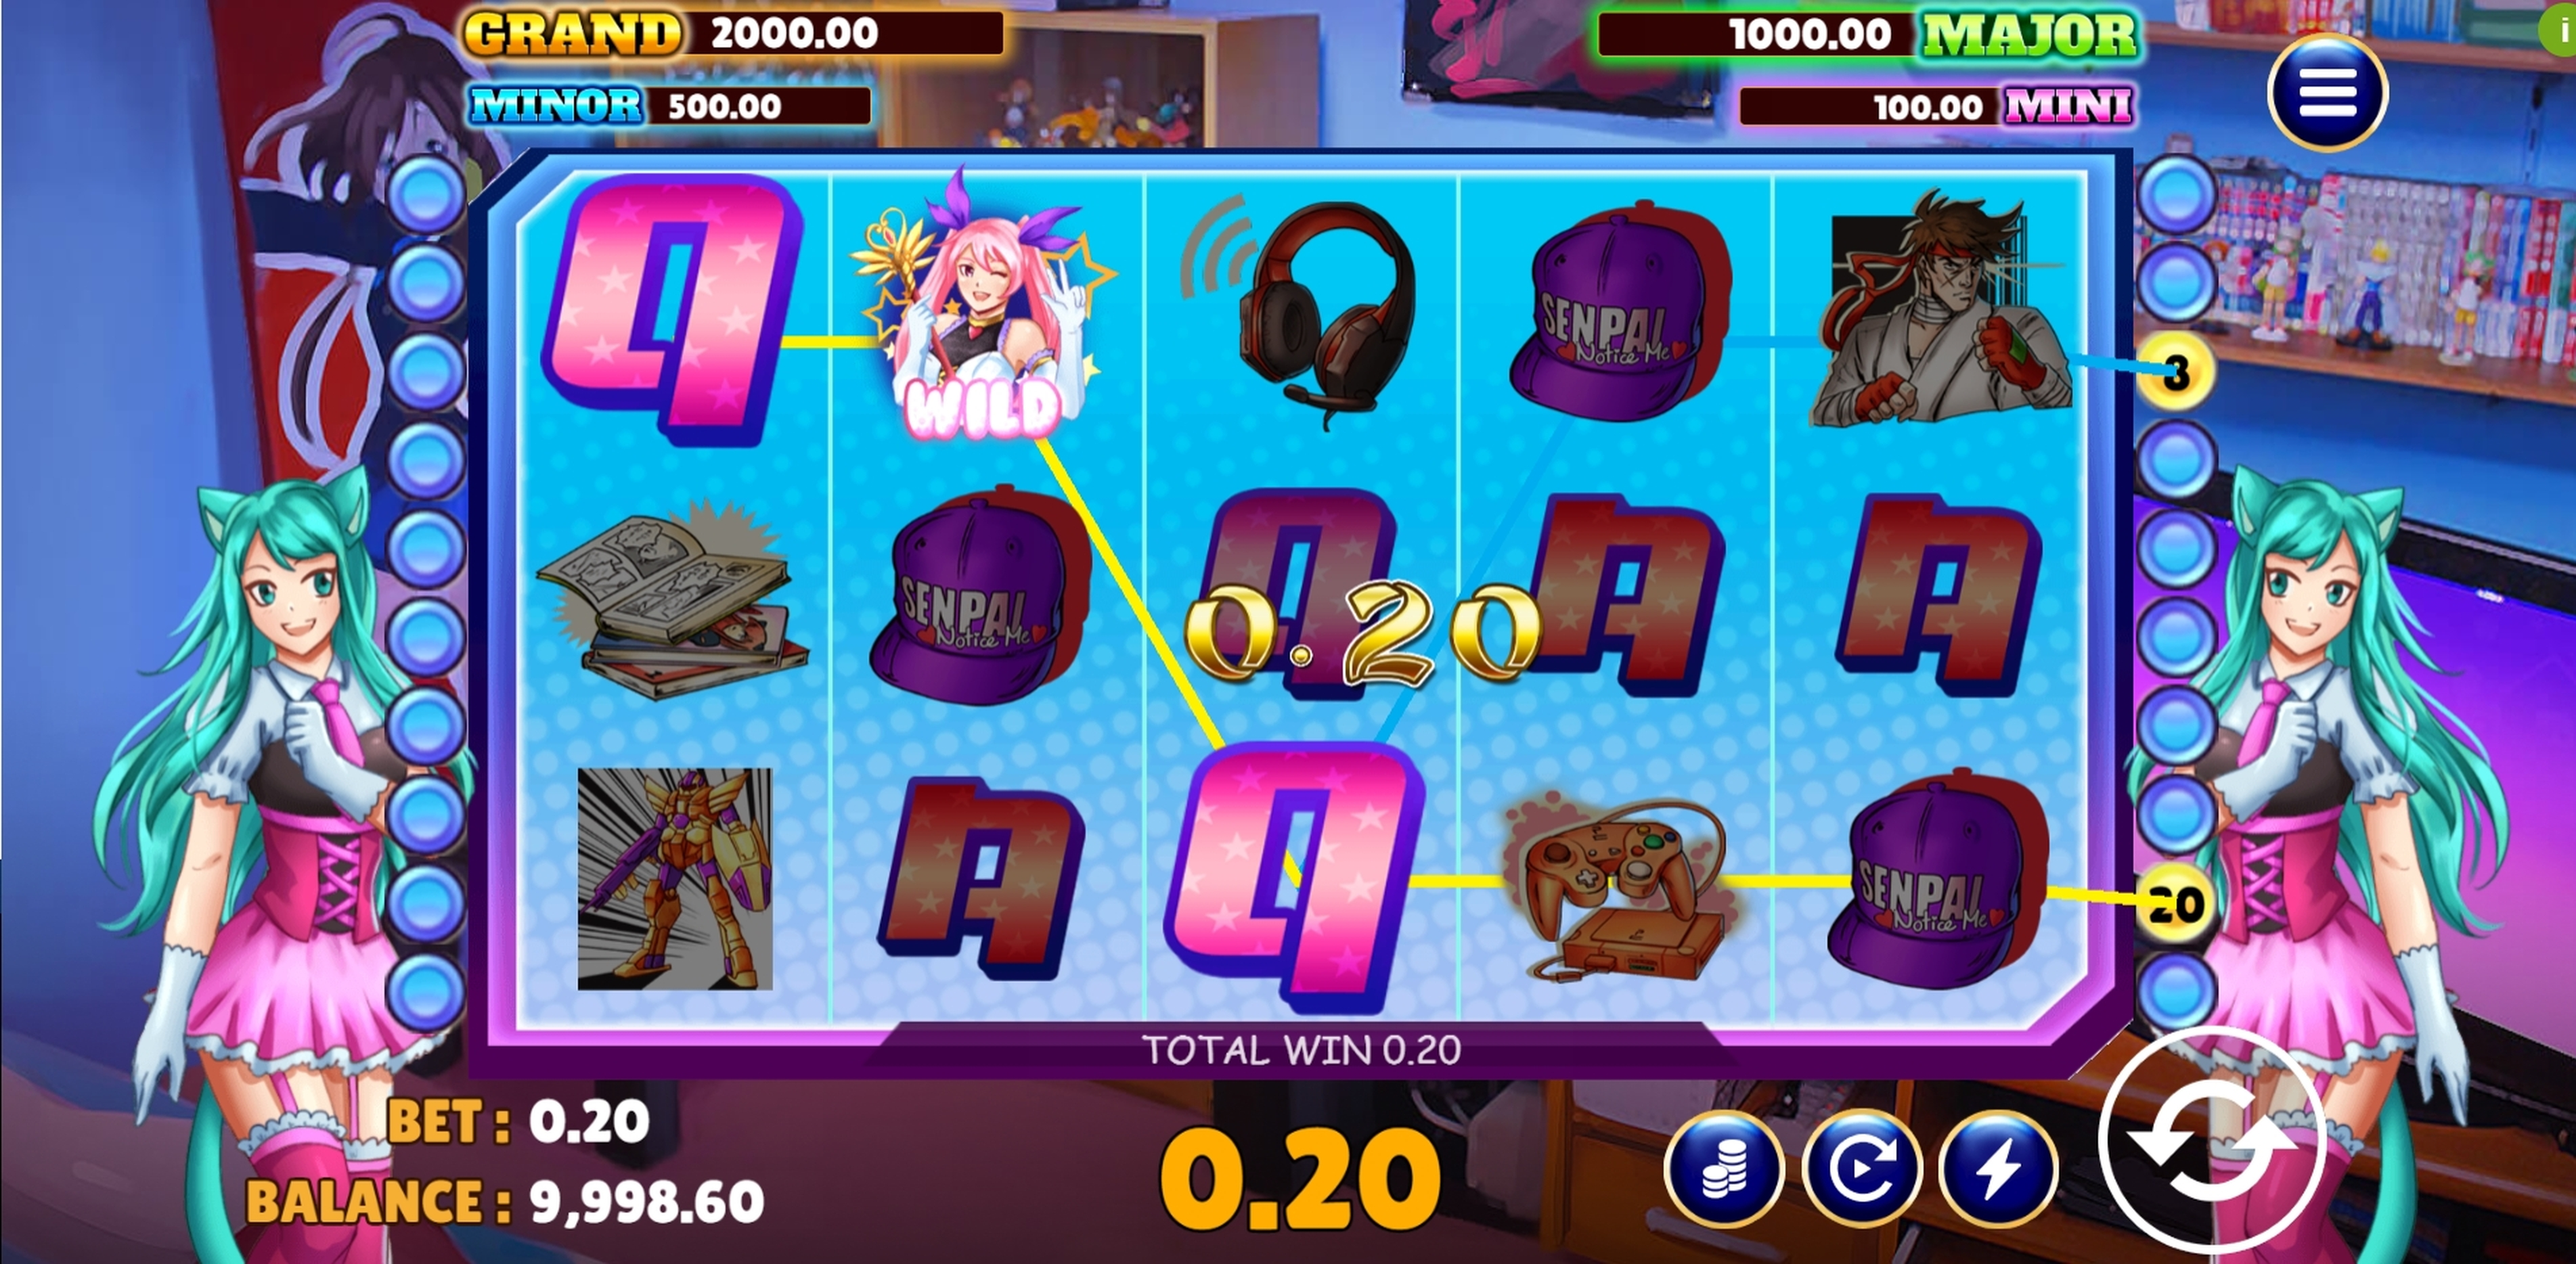 Win Money in Otaku's Heaven Free Slot Game by Vela Gaming